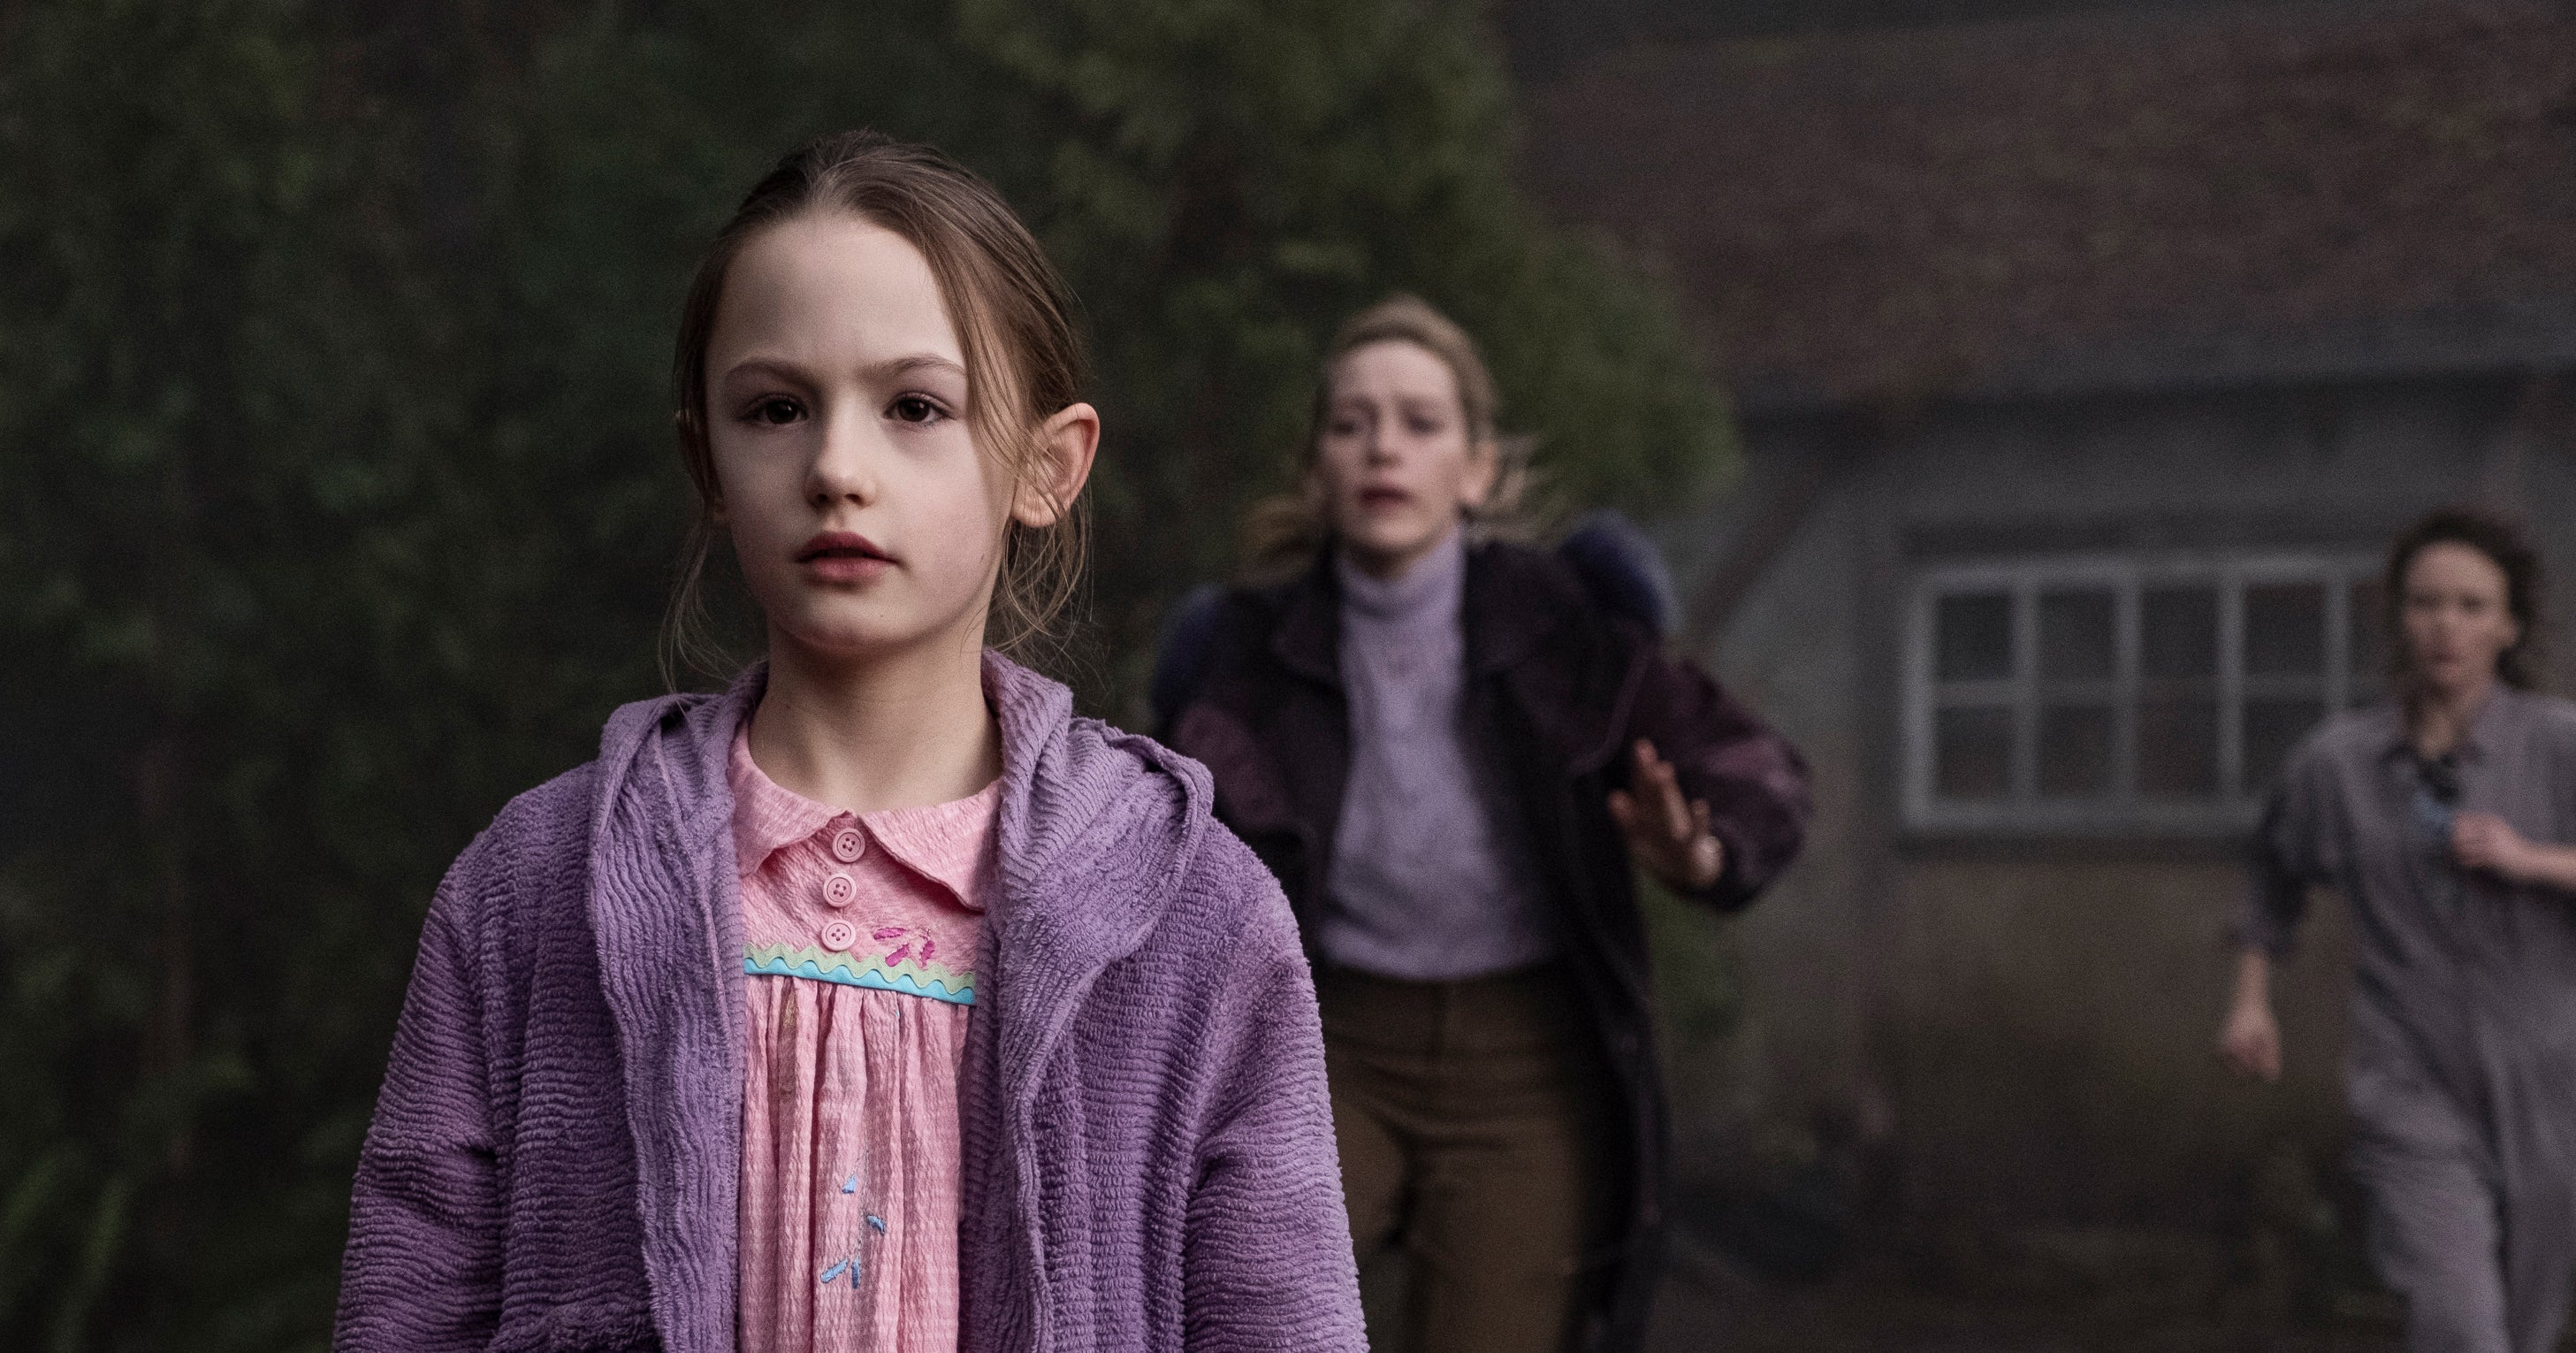 Netflix Releases The Haunting Of Bly Manor Trailer